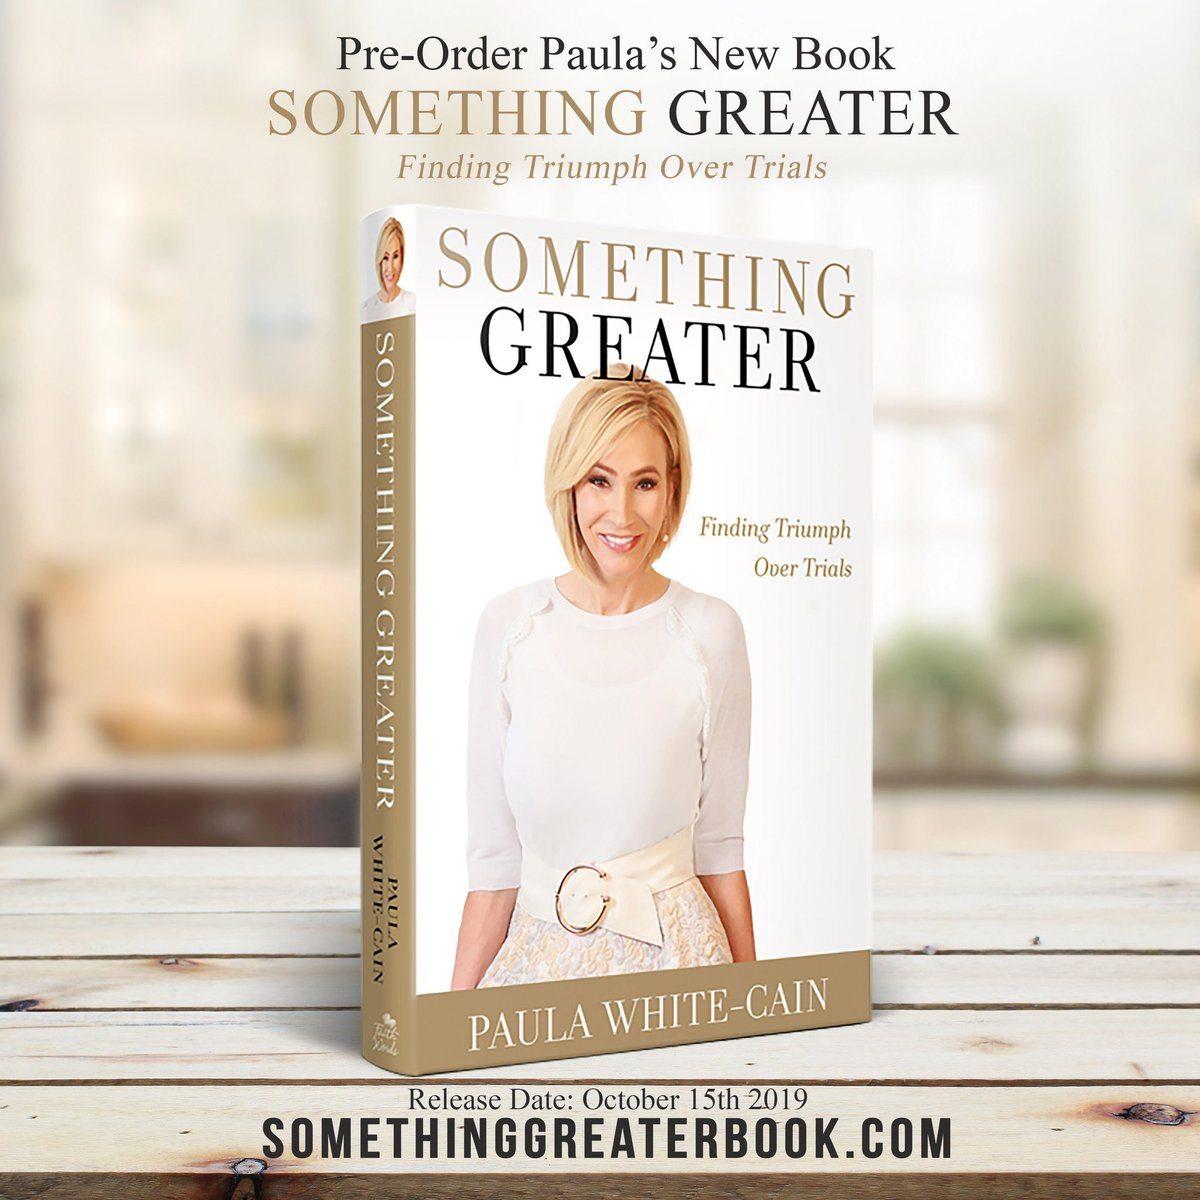 .@Paula_White has led an interesting life and now serves as a trusted advisor to @realDonaldTrump. She has a new book coming out tomorrow that you might want to check out! twitter.com/paula_white/st…